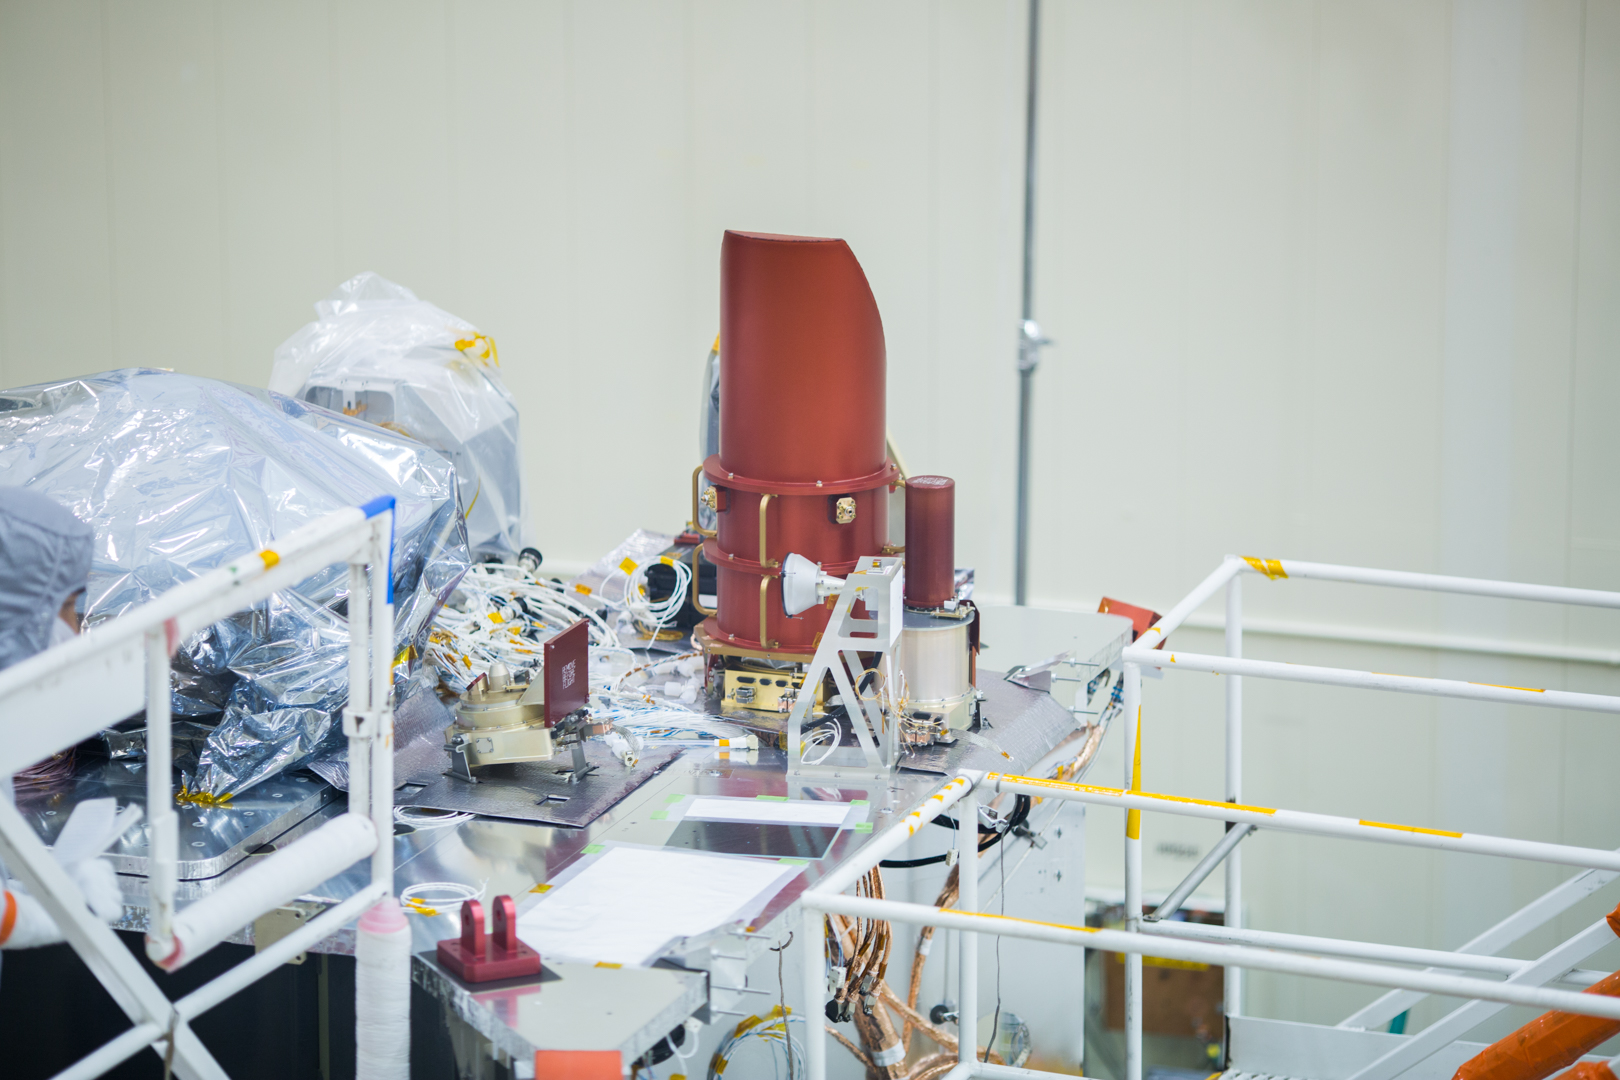 OCAMS Installed on Spacecraft